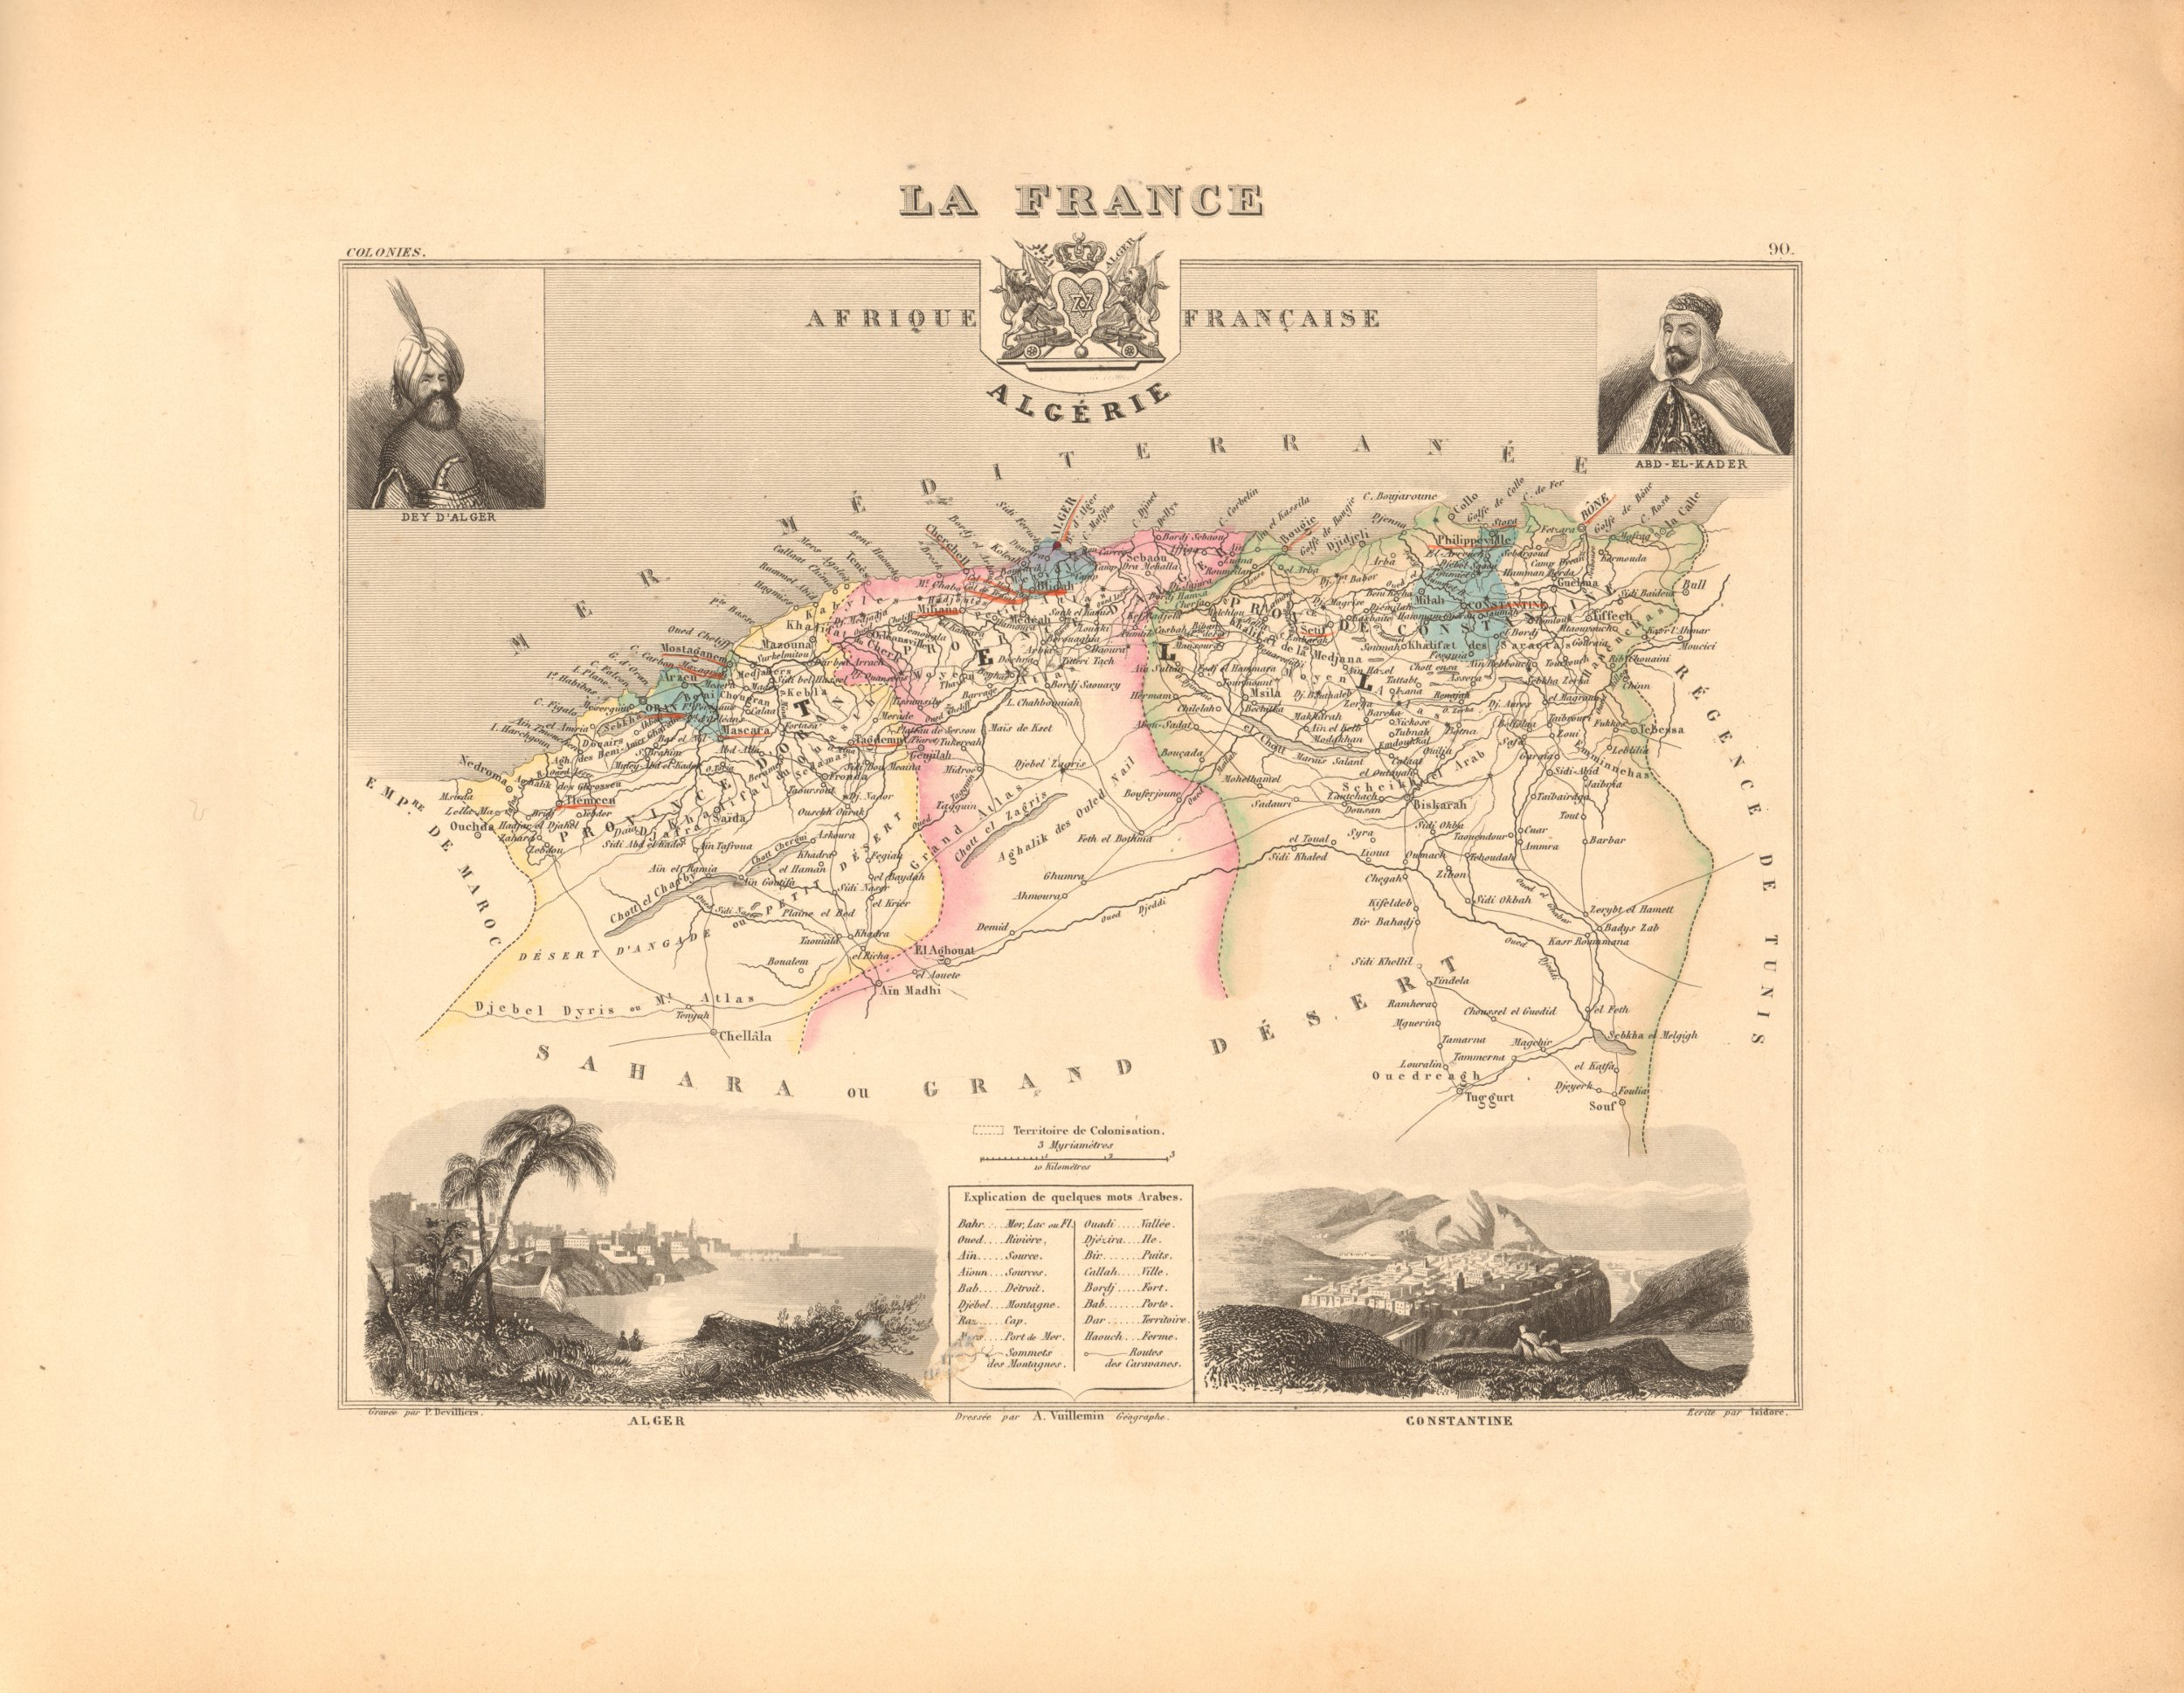 Algerie (Algeria) French Atlas Map